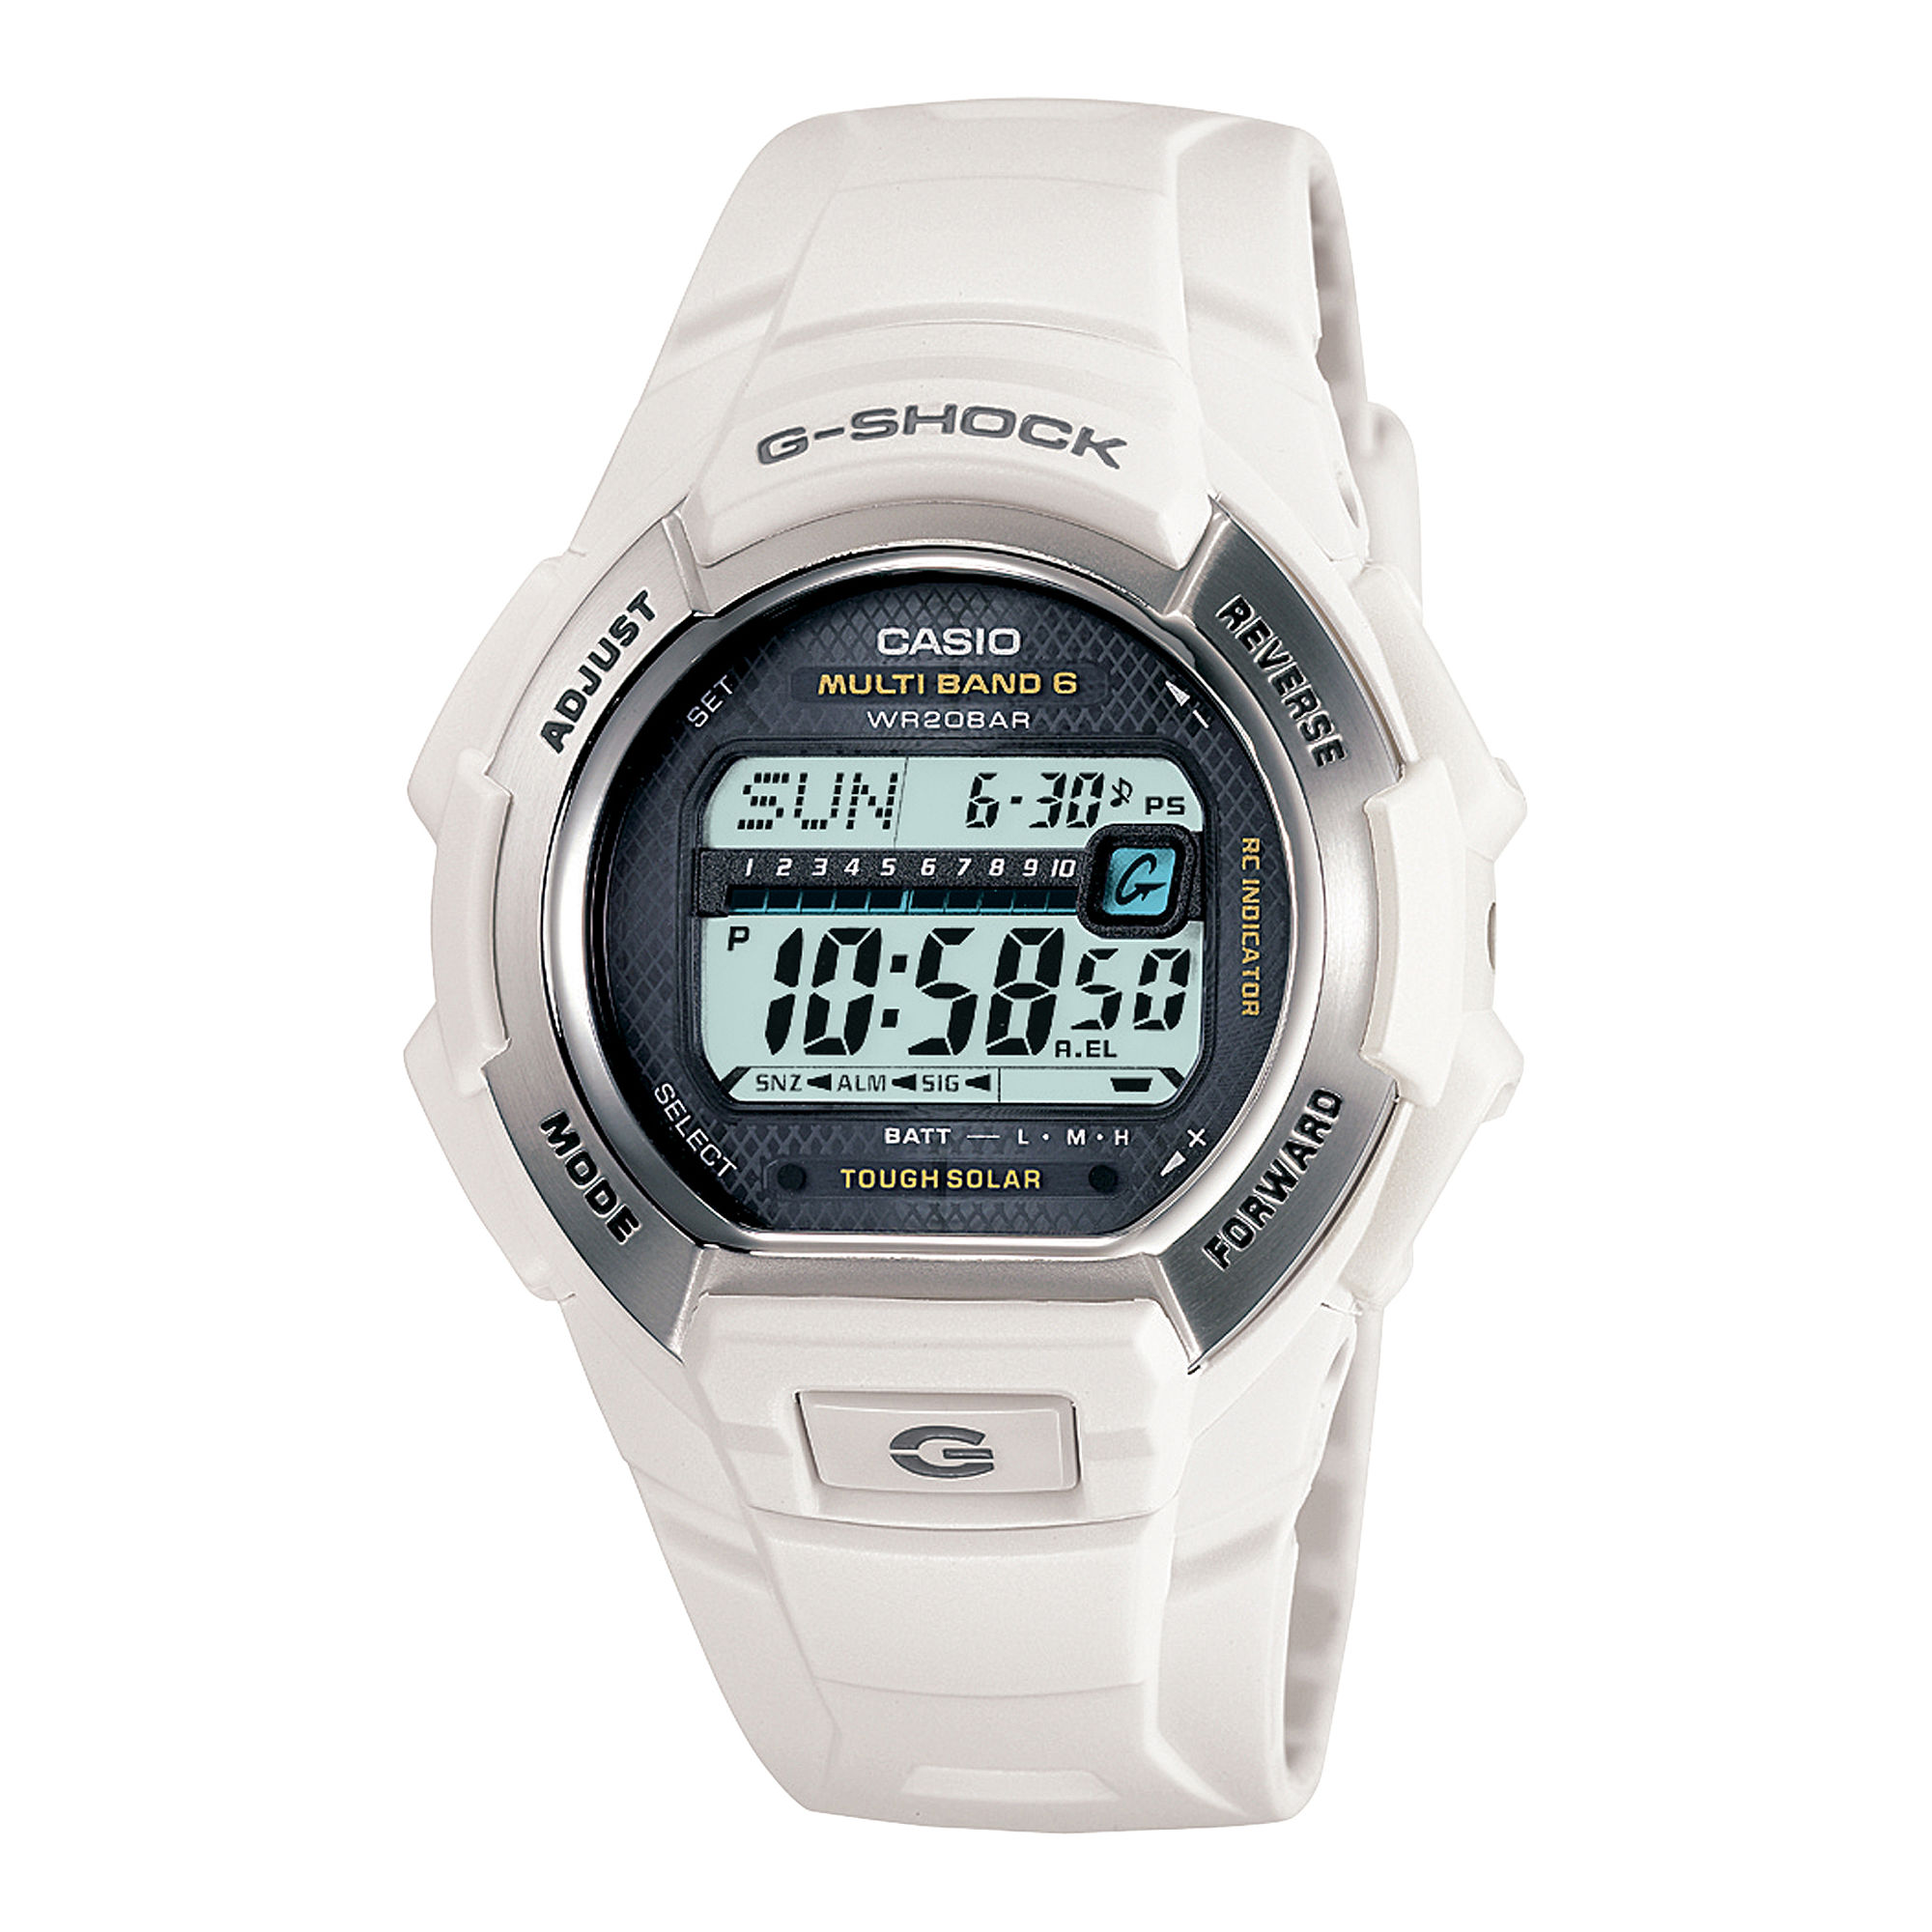 Casio G-Shock Multi-Band Atomic Time White Solar Watch GW-M850-7JCP